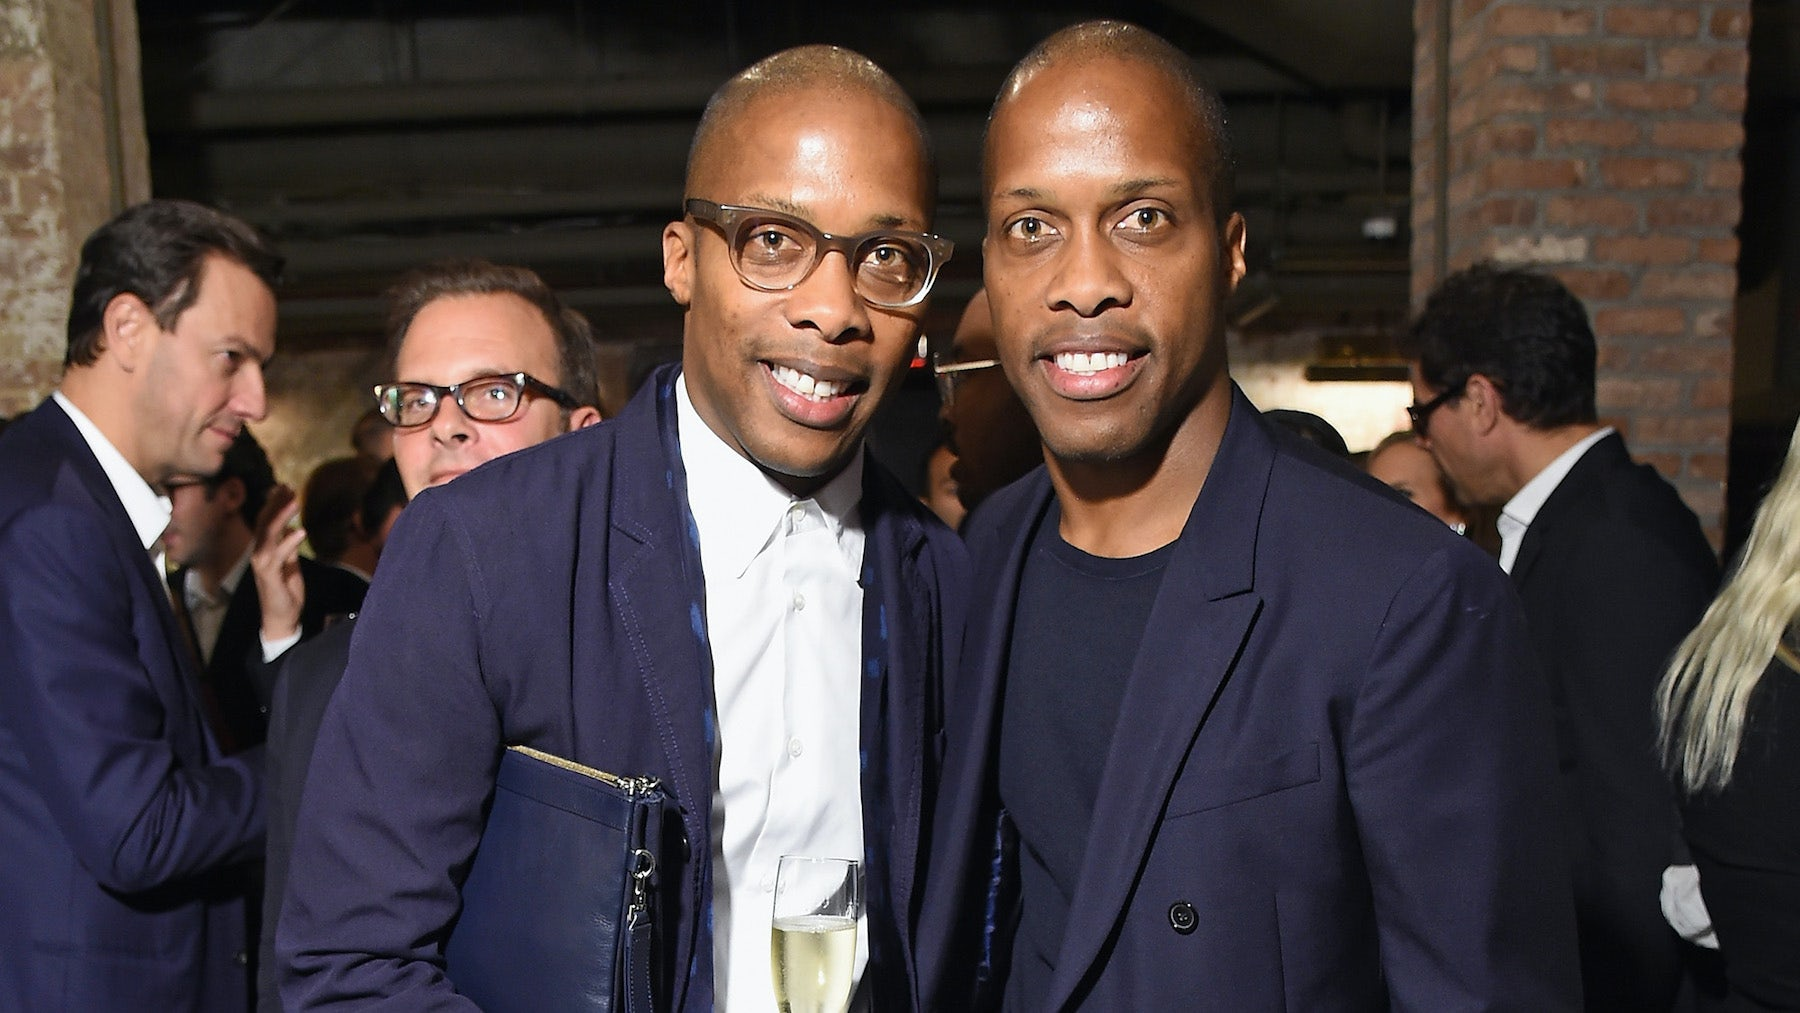 Dexter and Byron Peart | Source: Getty Images for The Business of Fashion